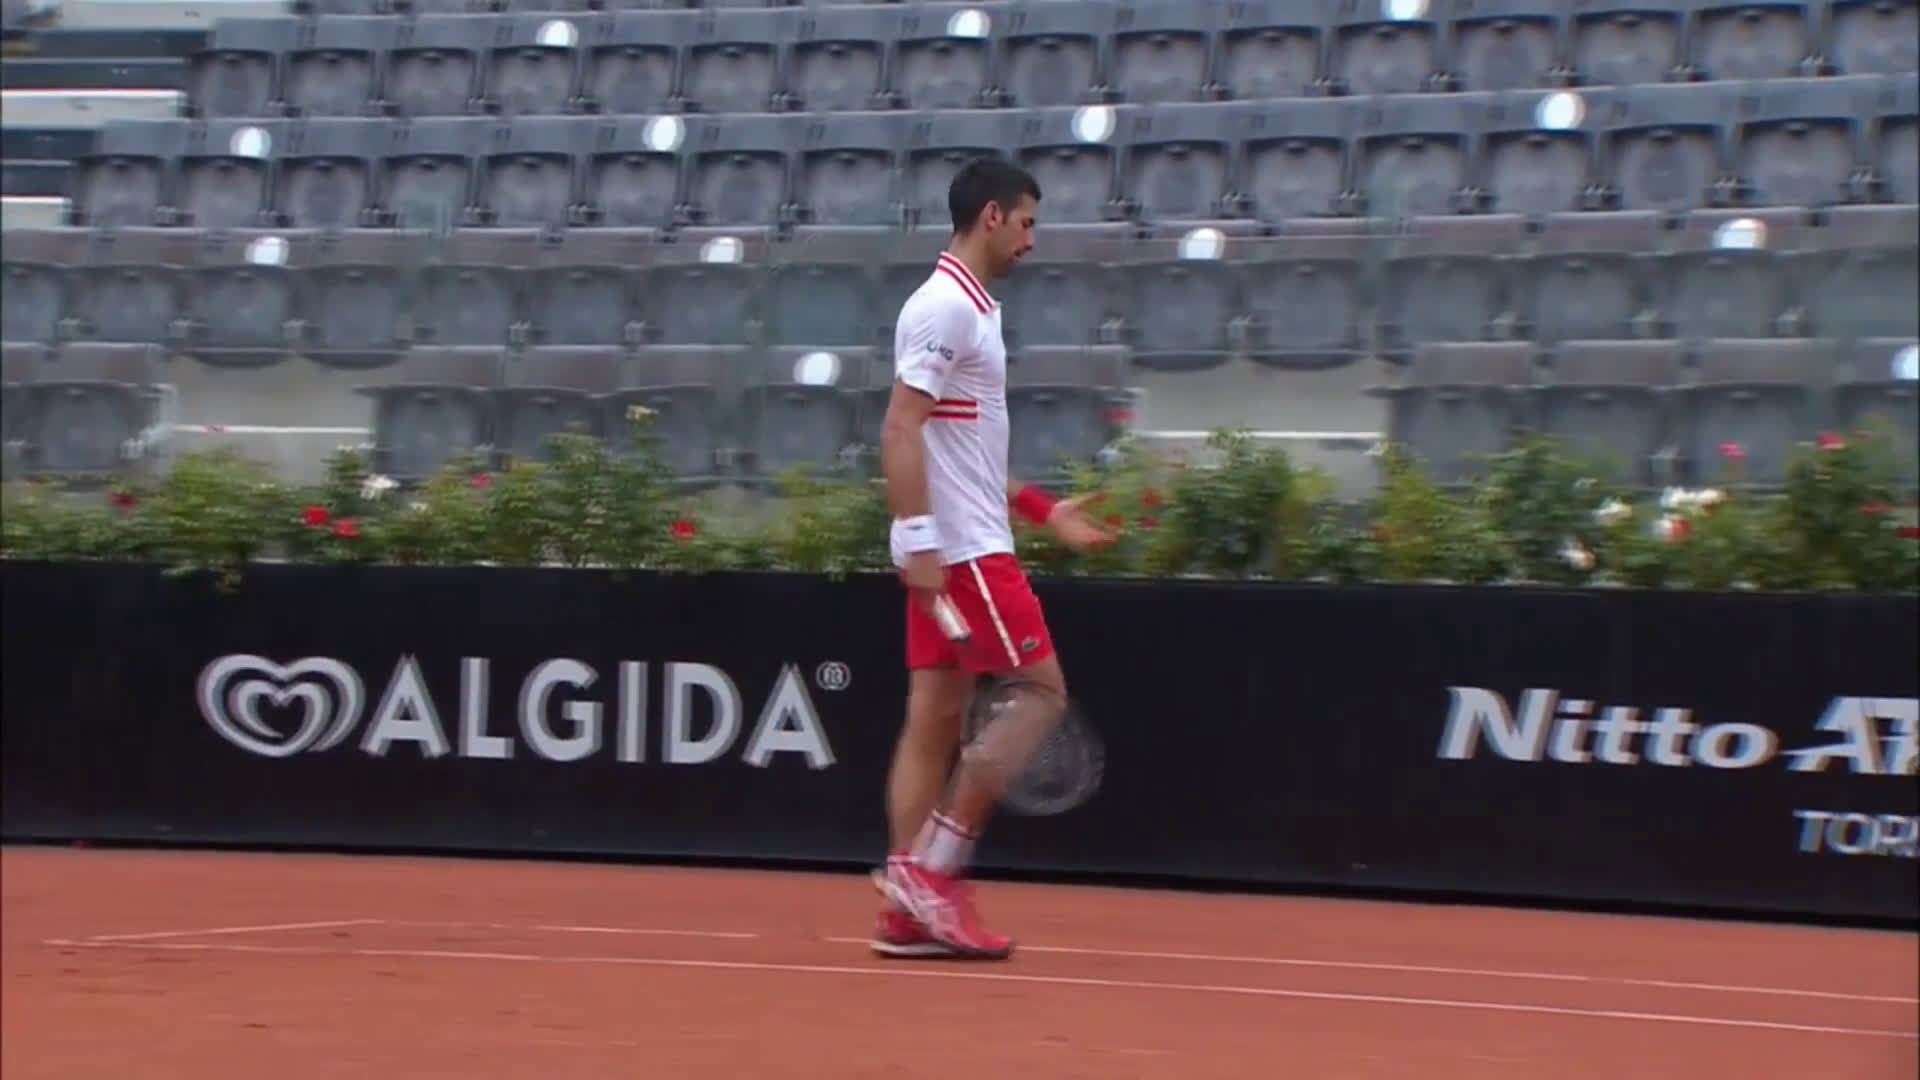 Djokovic screaming at the umpire to stop the play after getting broken when serving for a match against Fritz in heavy rain